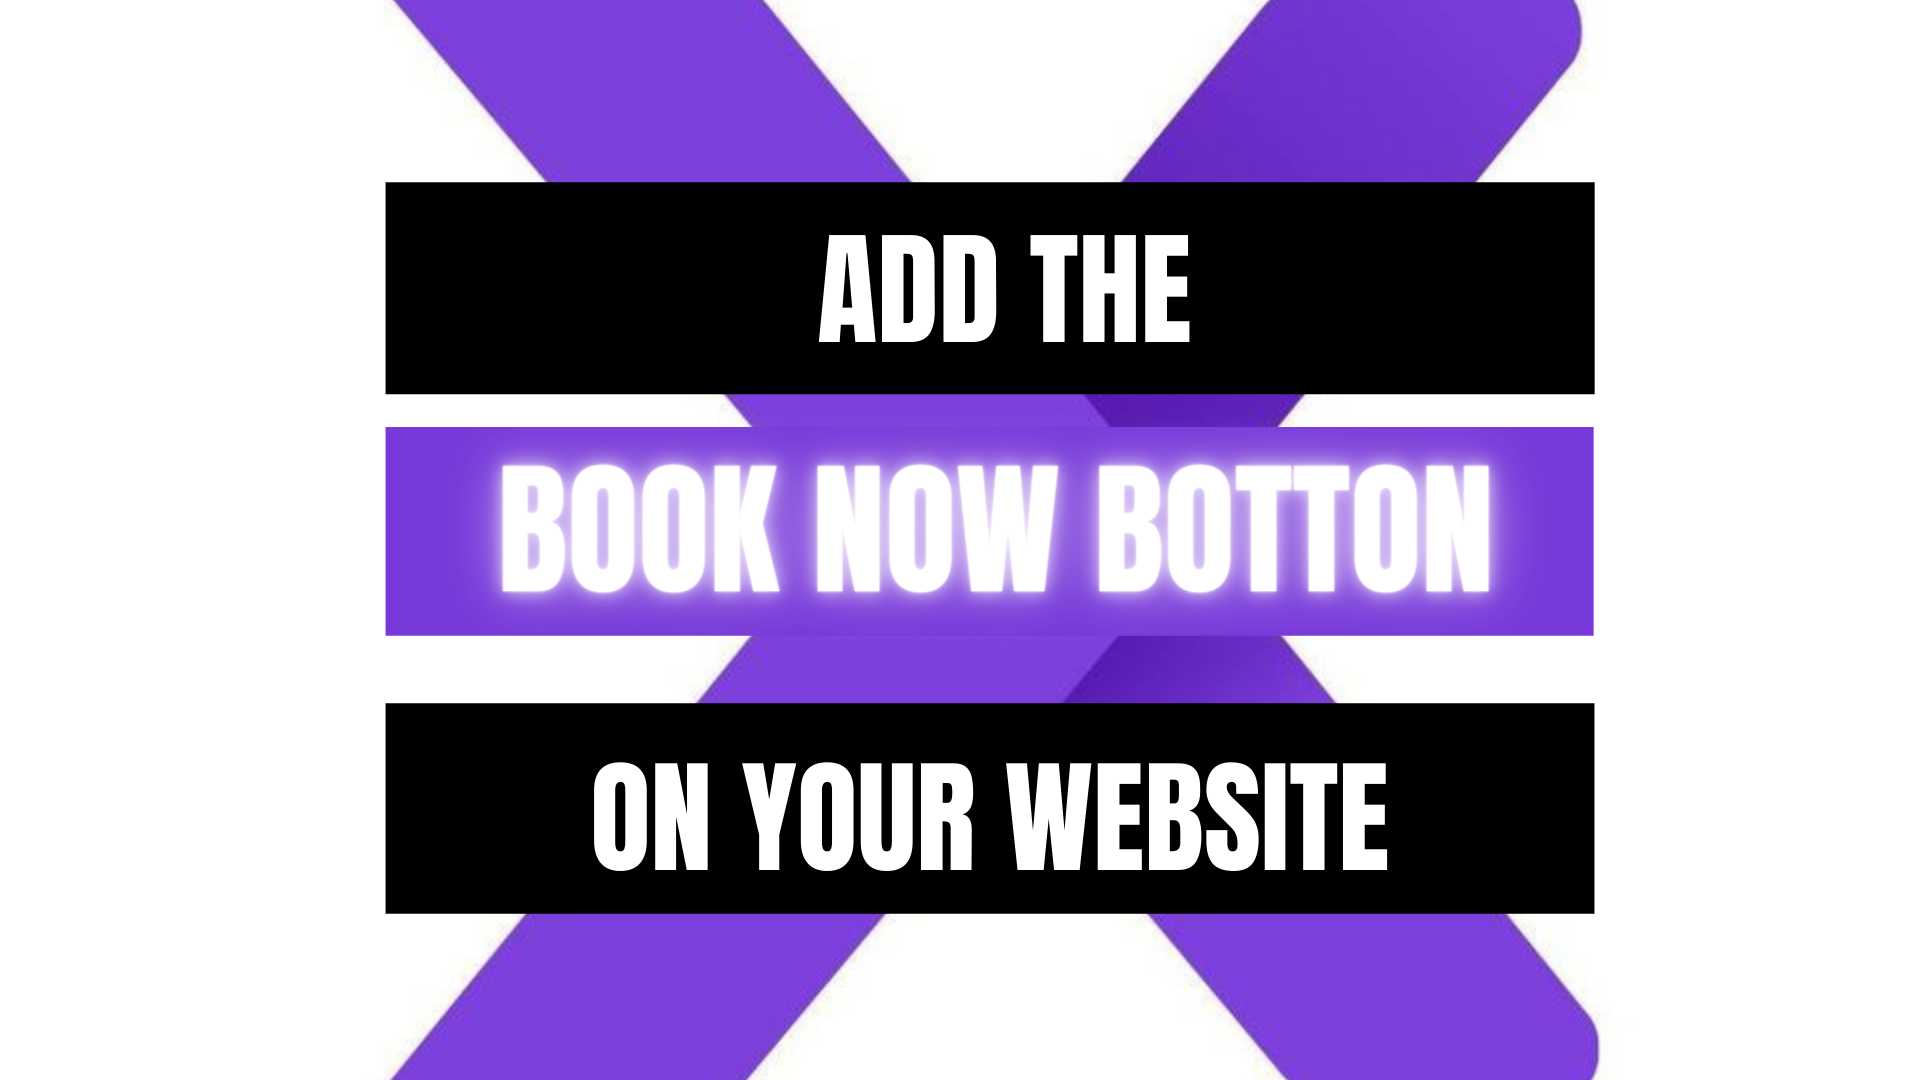 Peekaboox - Add the Book Now Botton on Your Site